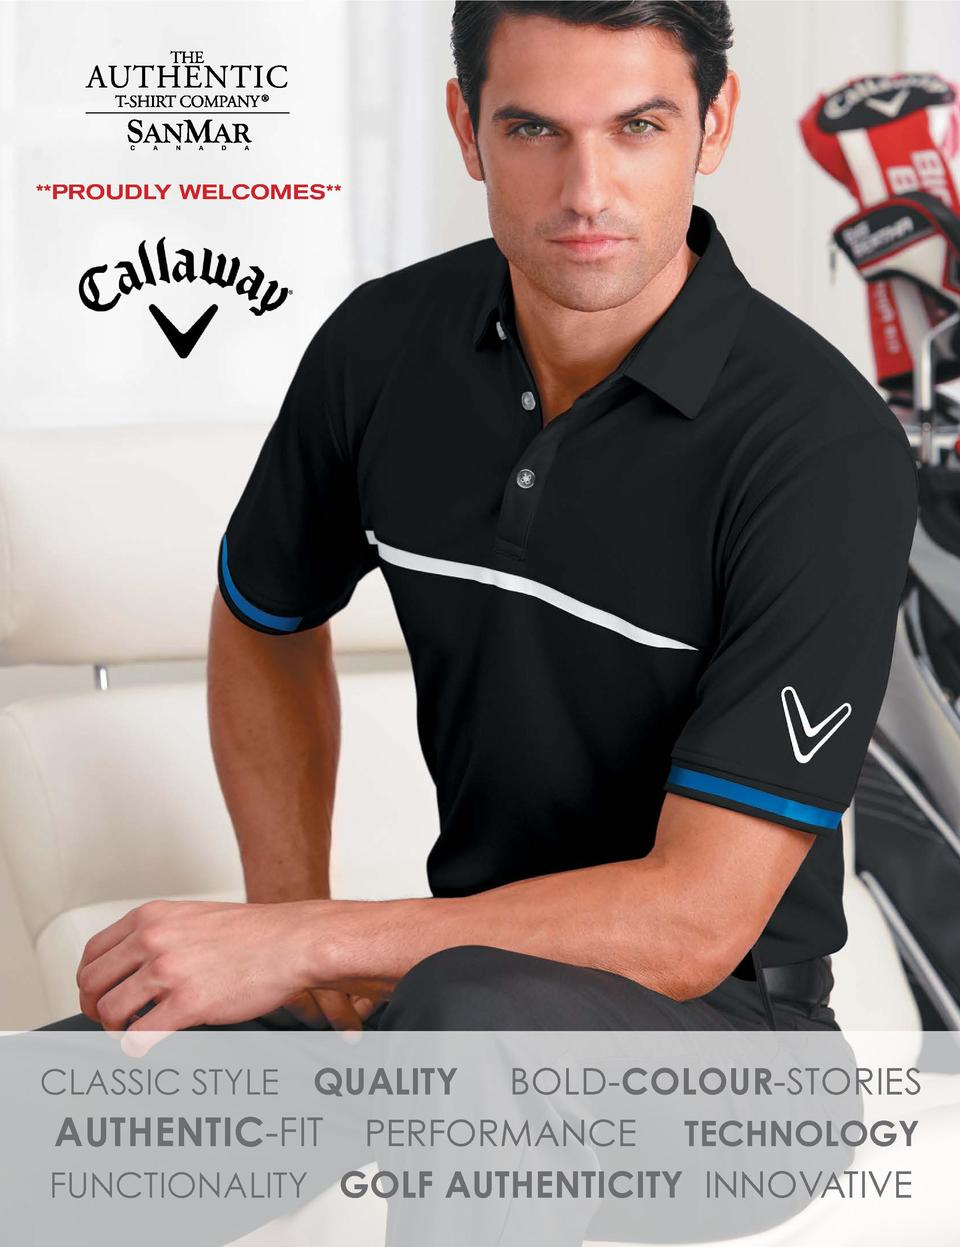 PROUDLY WELCOMES    CLASSIC STYLE QUALITY BOLD-COLOUR-STORIES AUTHENTIC-FIT PERFORMANCE TECHNOLOGY FUNCTIONALITY GOLF AU...